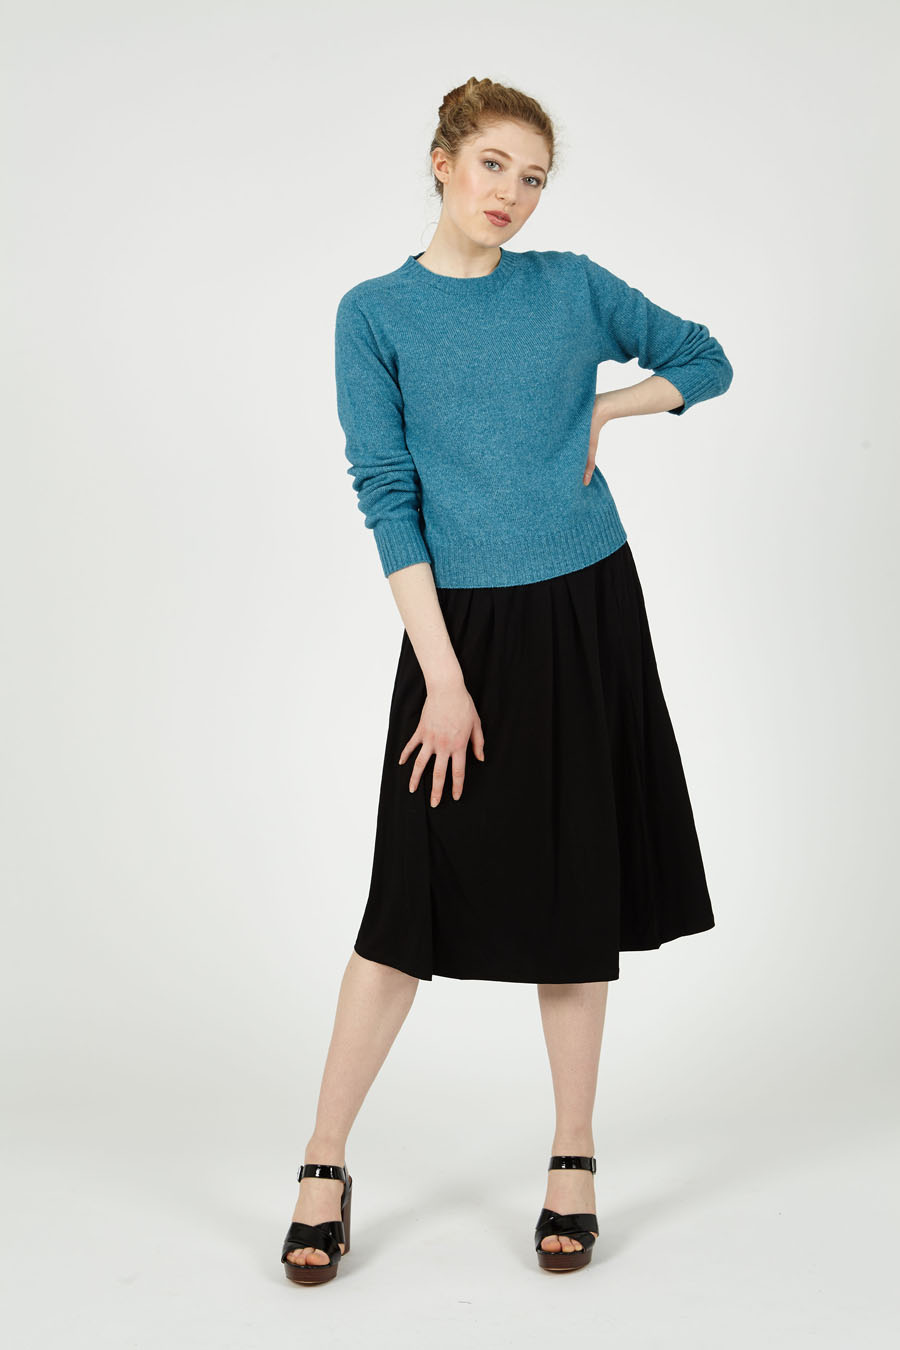 T-lab Alana womens sweater kingfisher model full